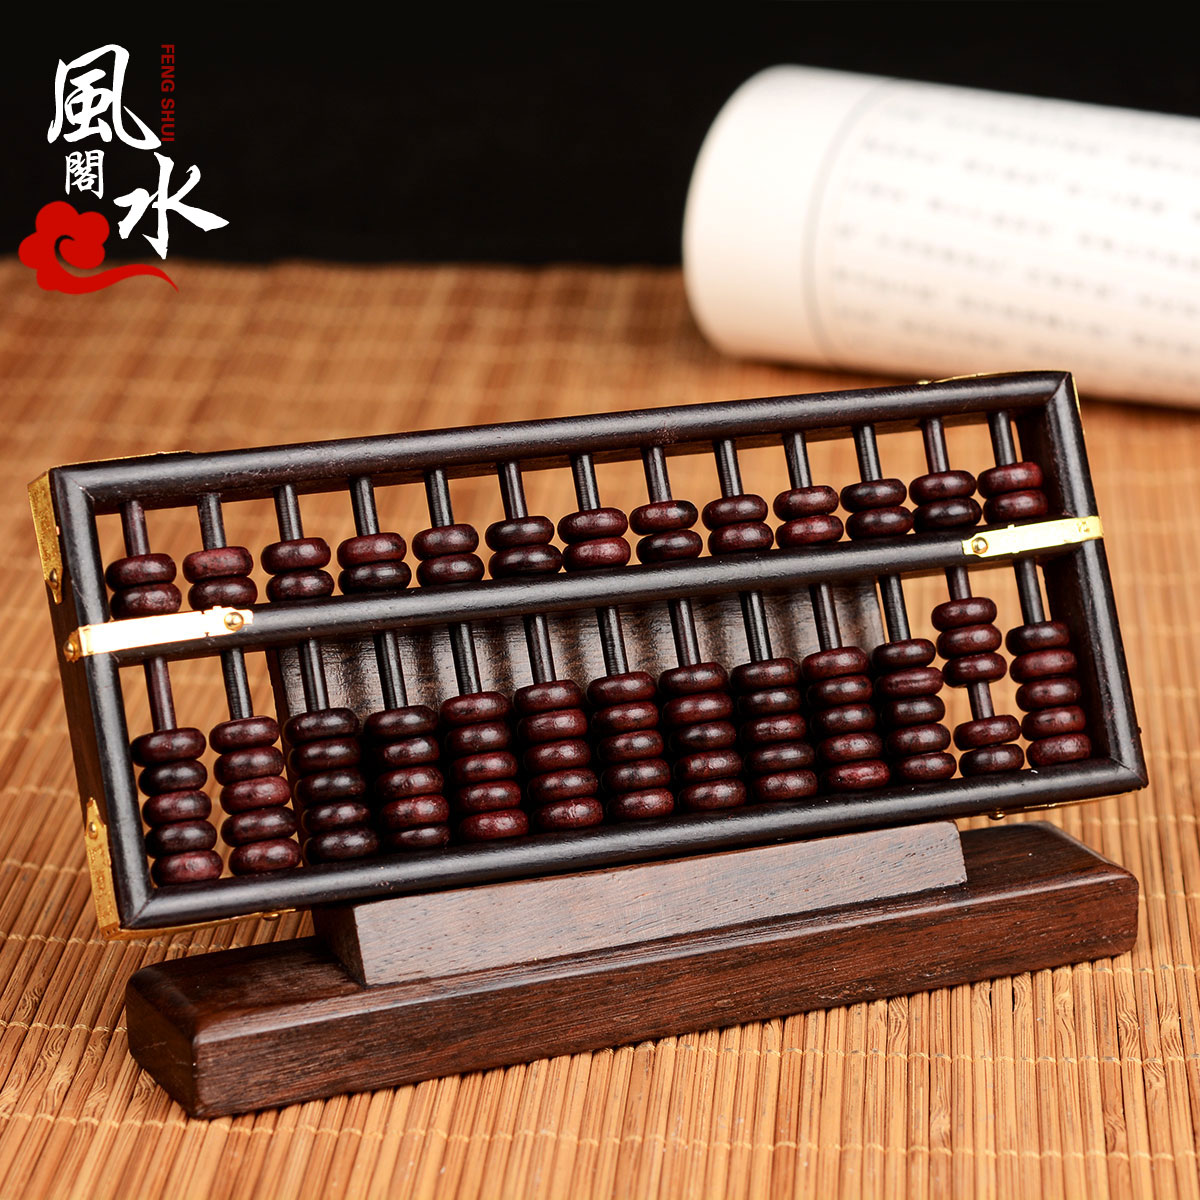 Small wooden ornaments - Get Quotations Feng Shui Court Opening Ebony Small Wooden Ornaments Fashioned Wooden Abacus Abacus Woodcarving Home Decorations To